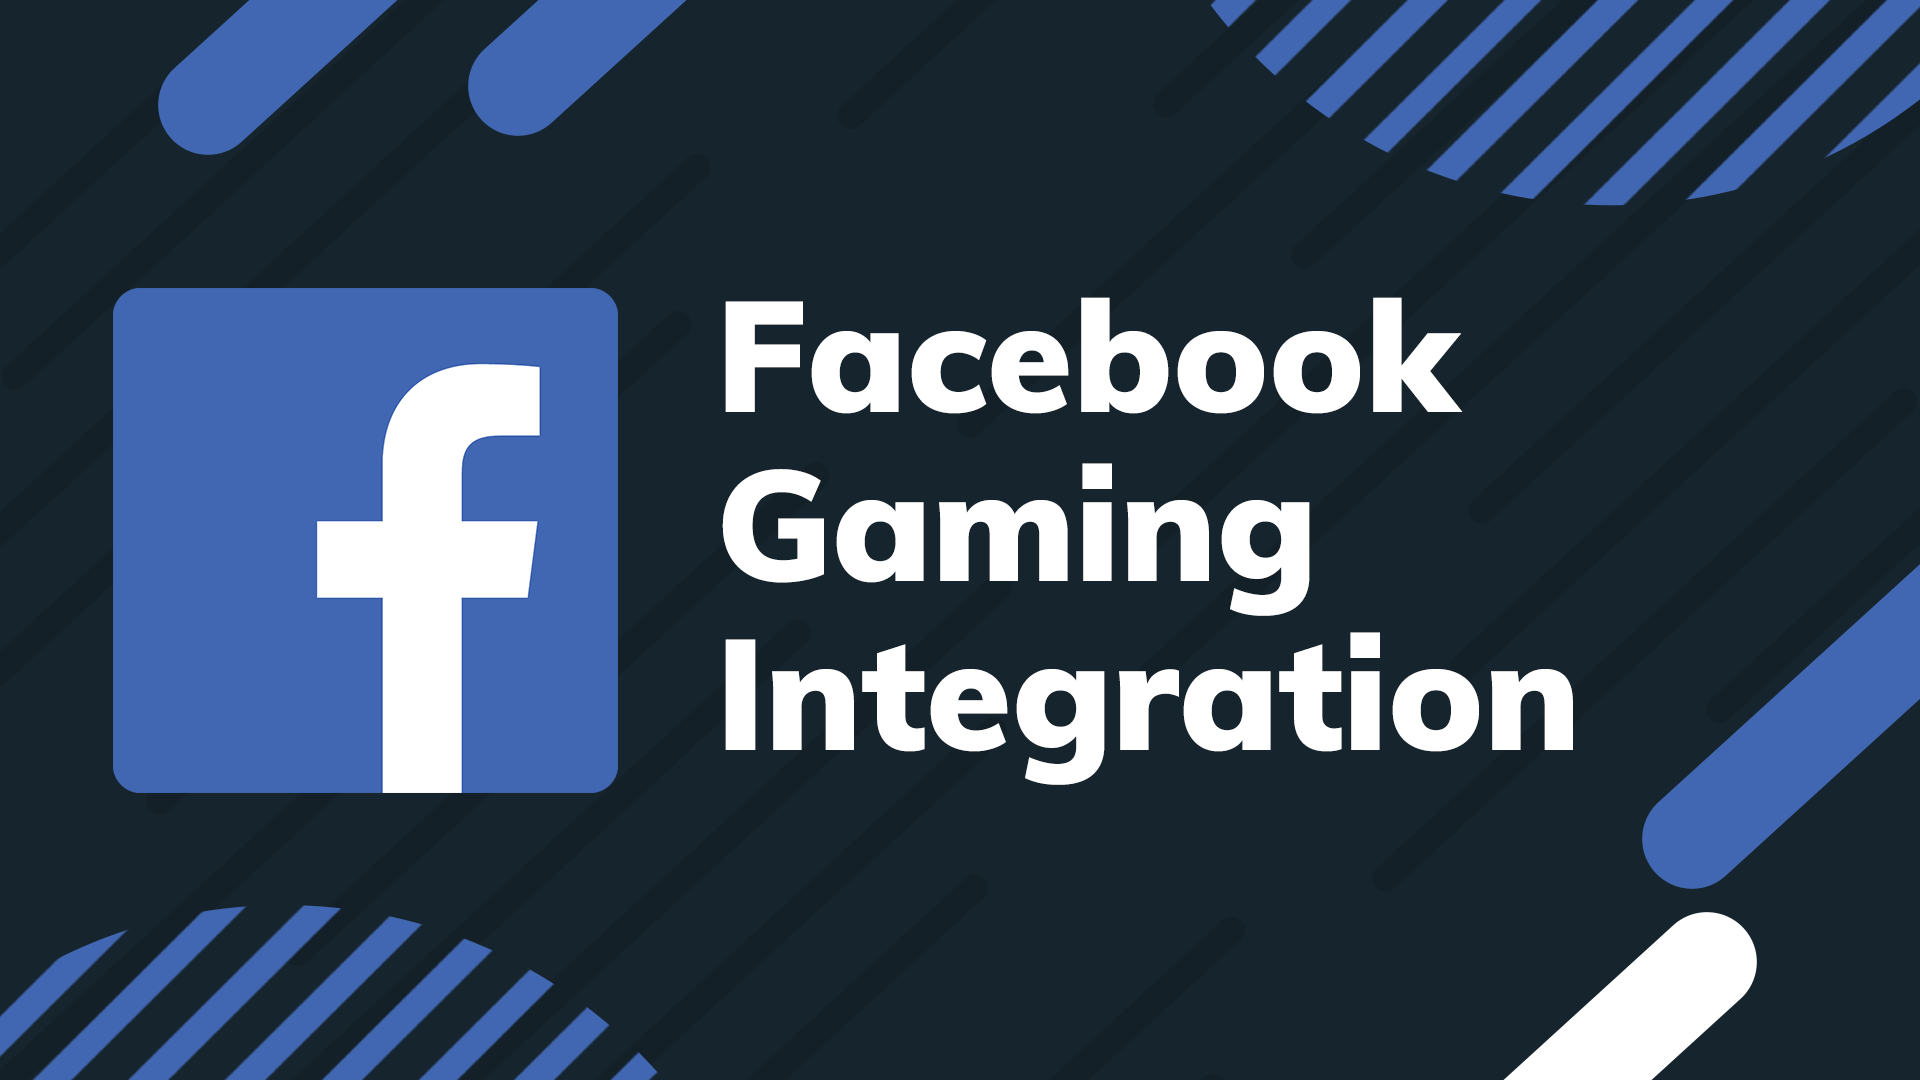 Streaming Games on Facebook Just Got Easier - Streamlabs Blog